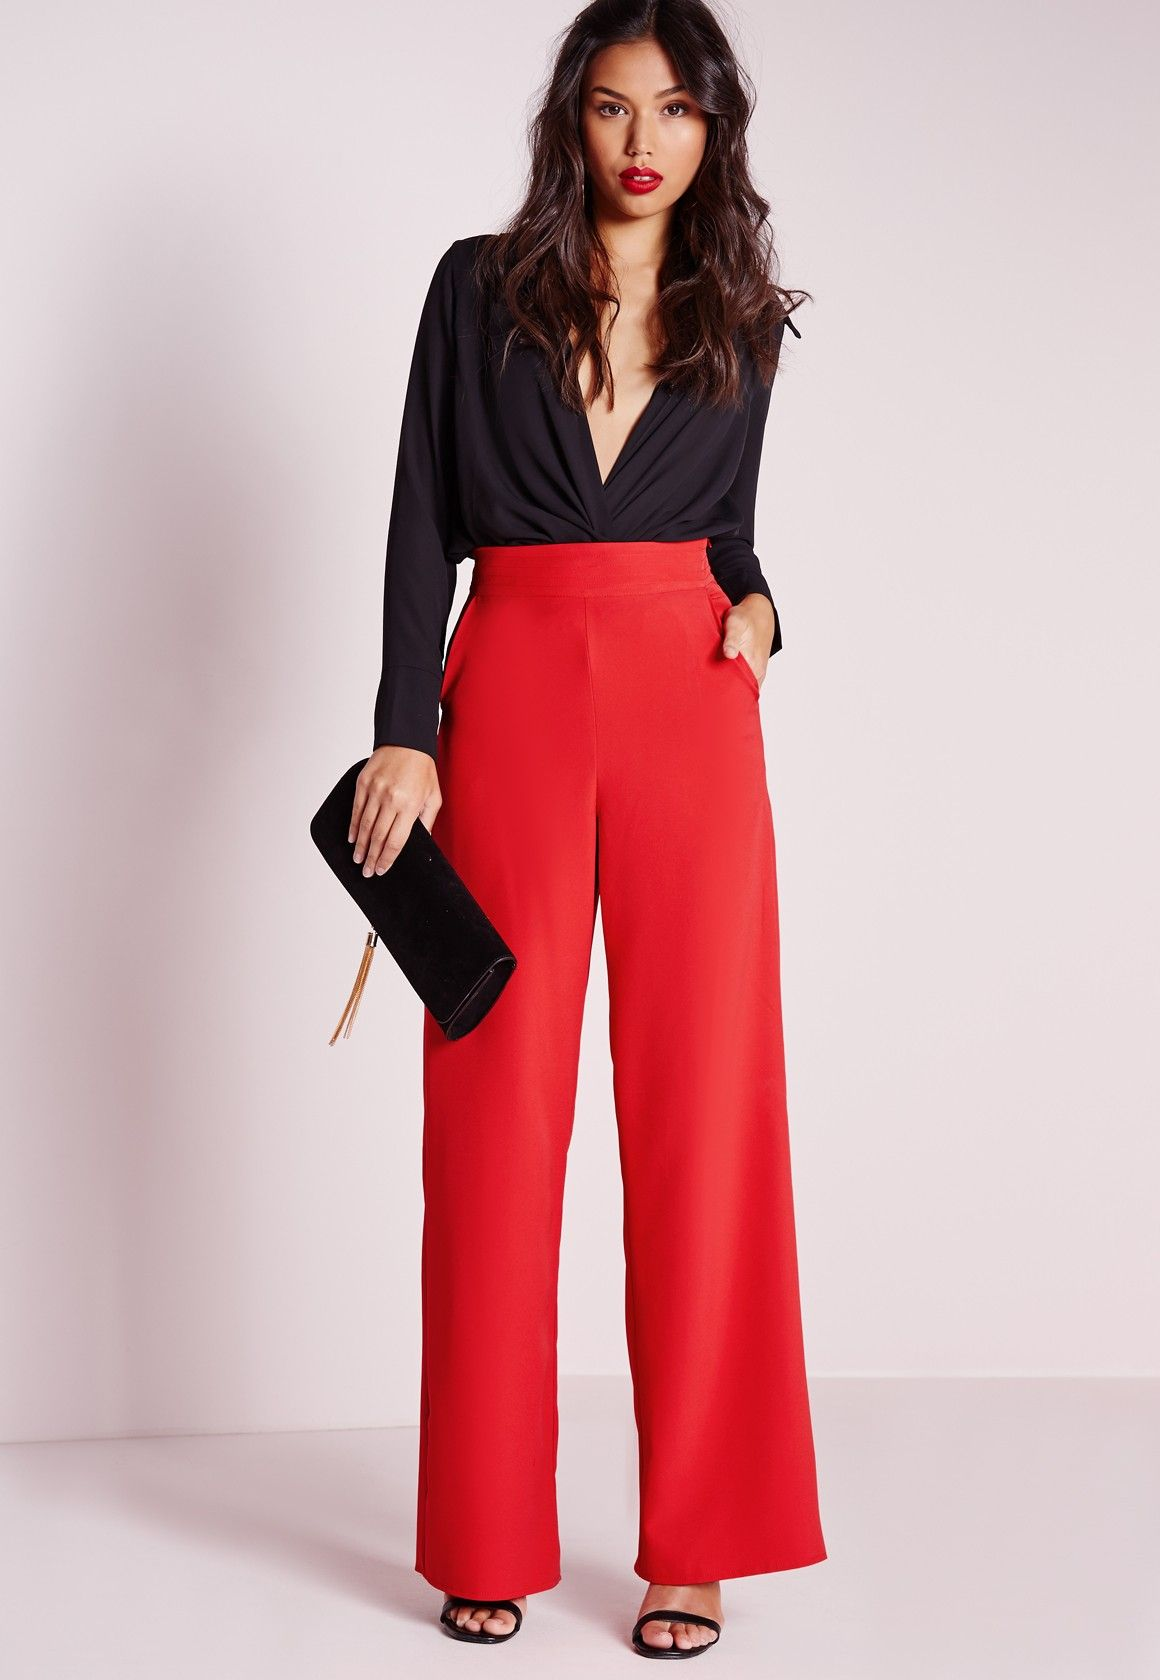 High Waisted Wide Leg Trousers Outfits